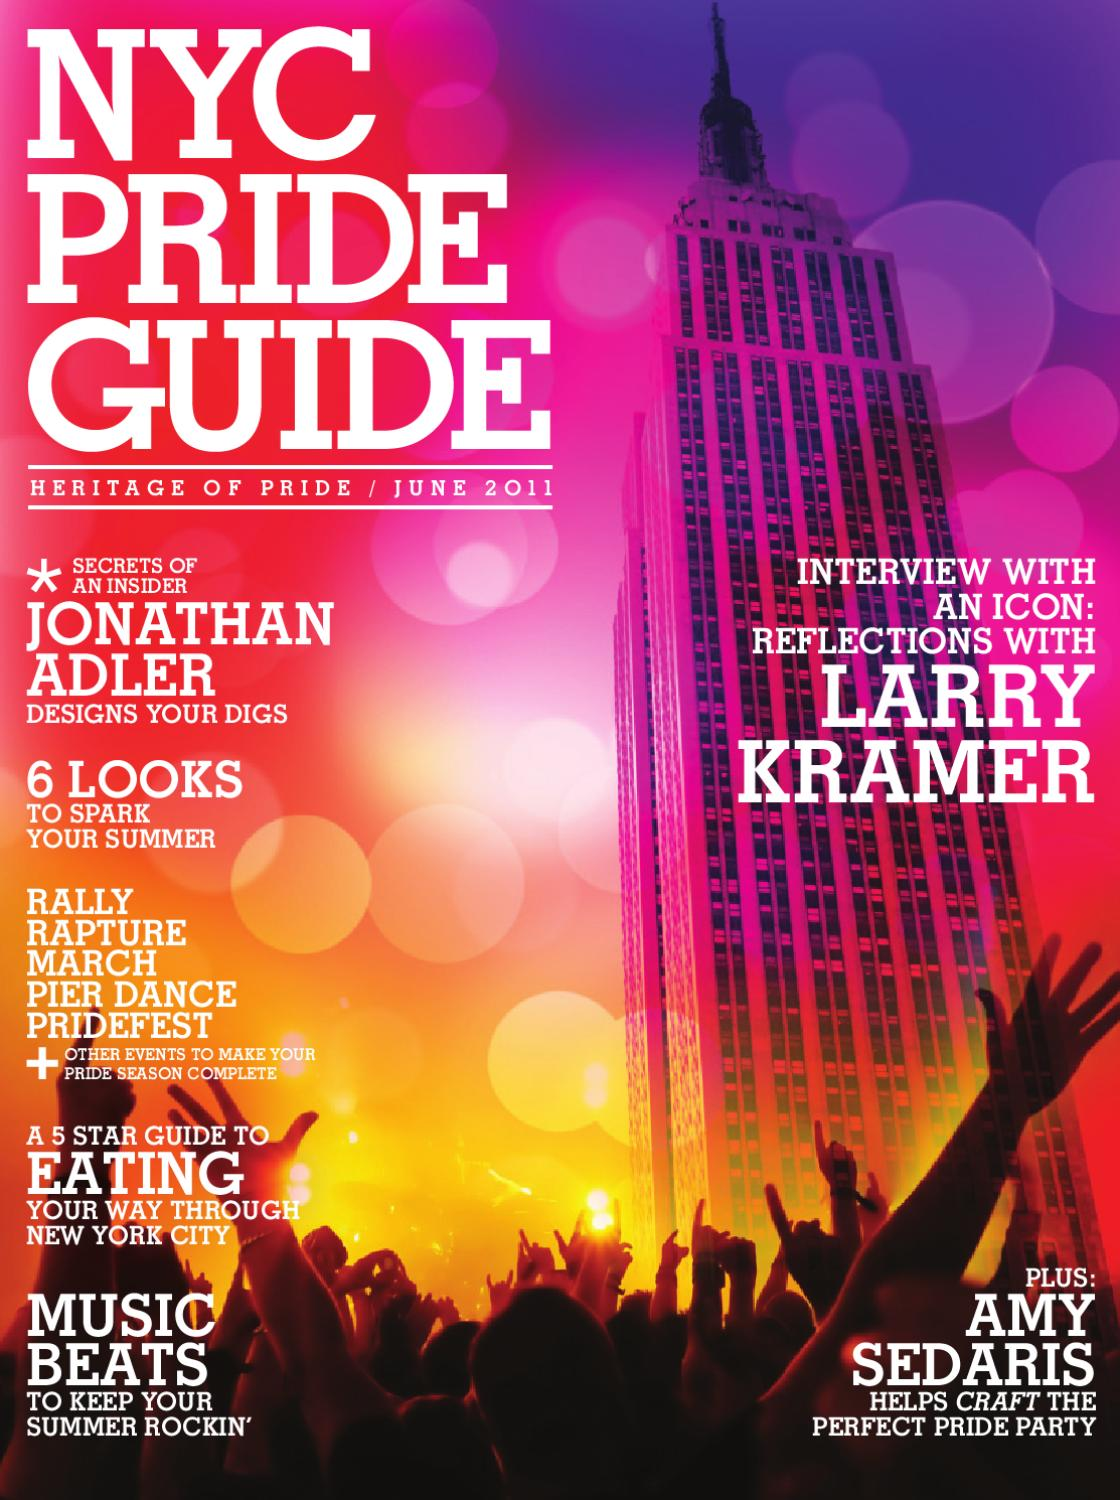 5906f1f9c 2011 Pride Guide by NYC Pride - issuu